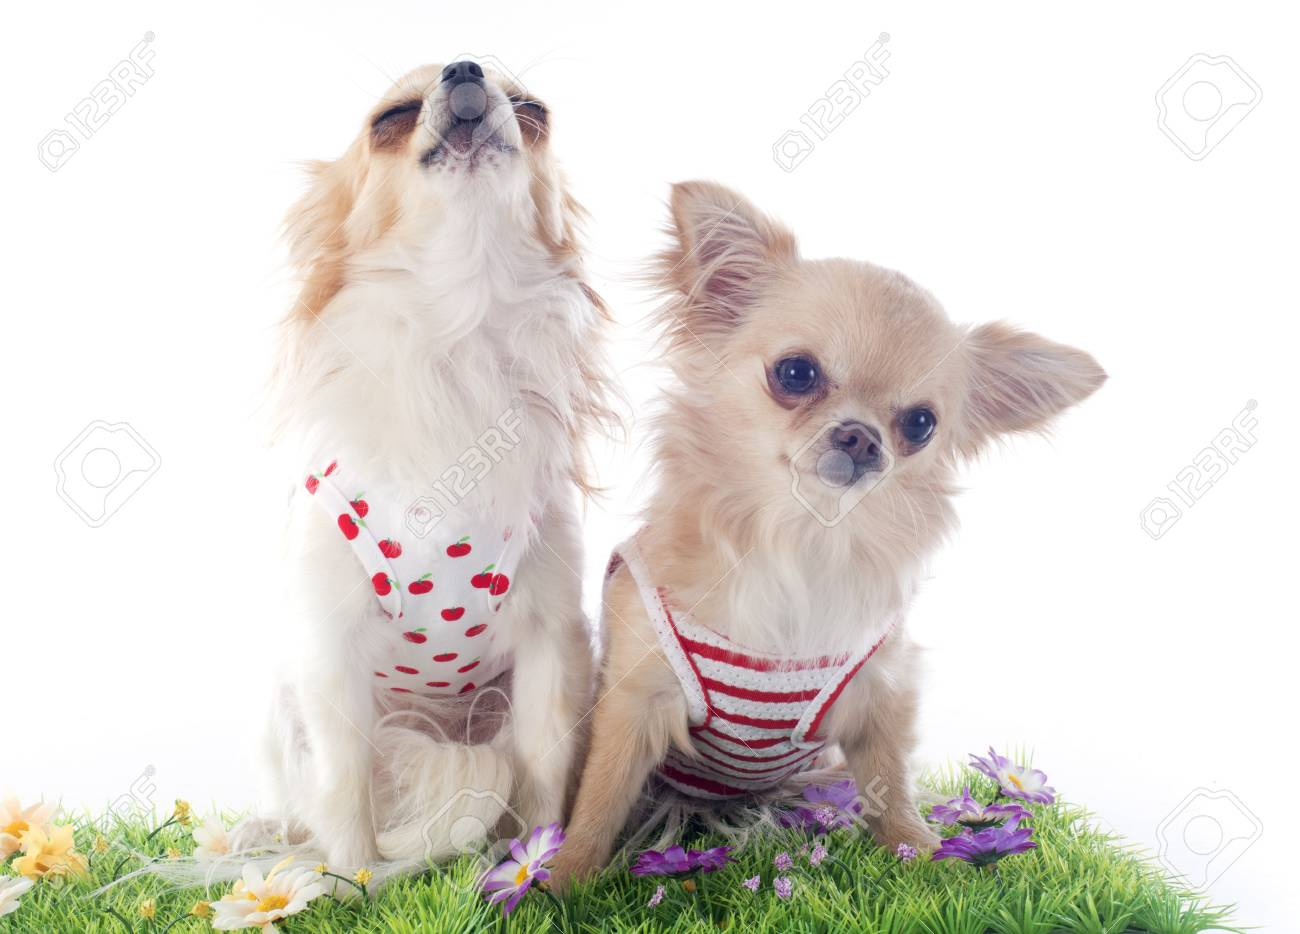 chihuahua in grass in front of white background Stock Photo - 19256093